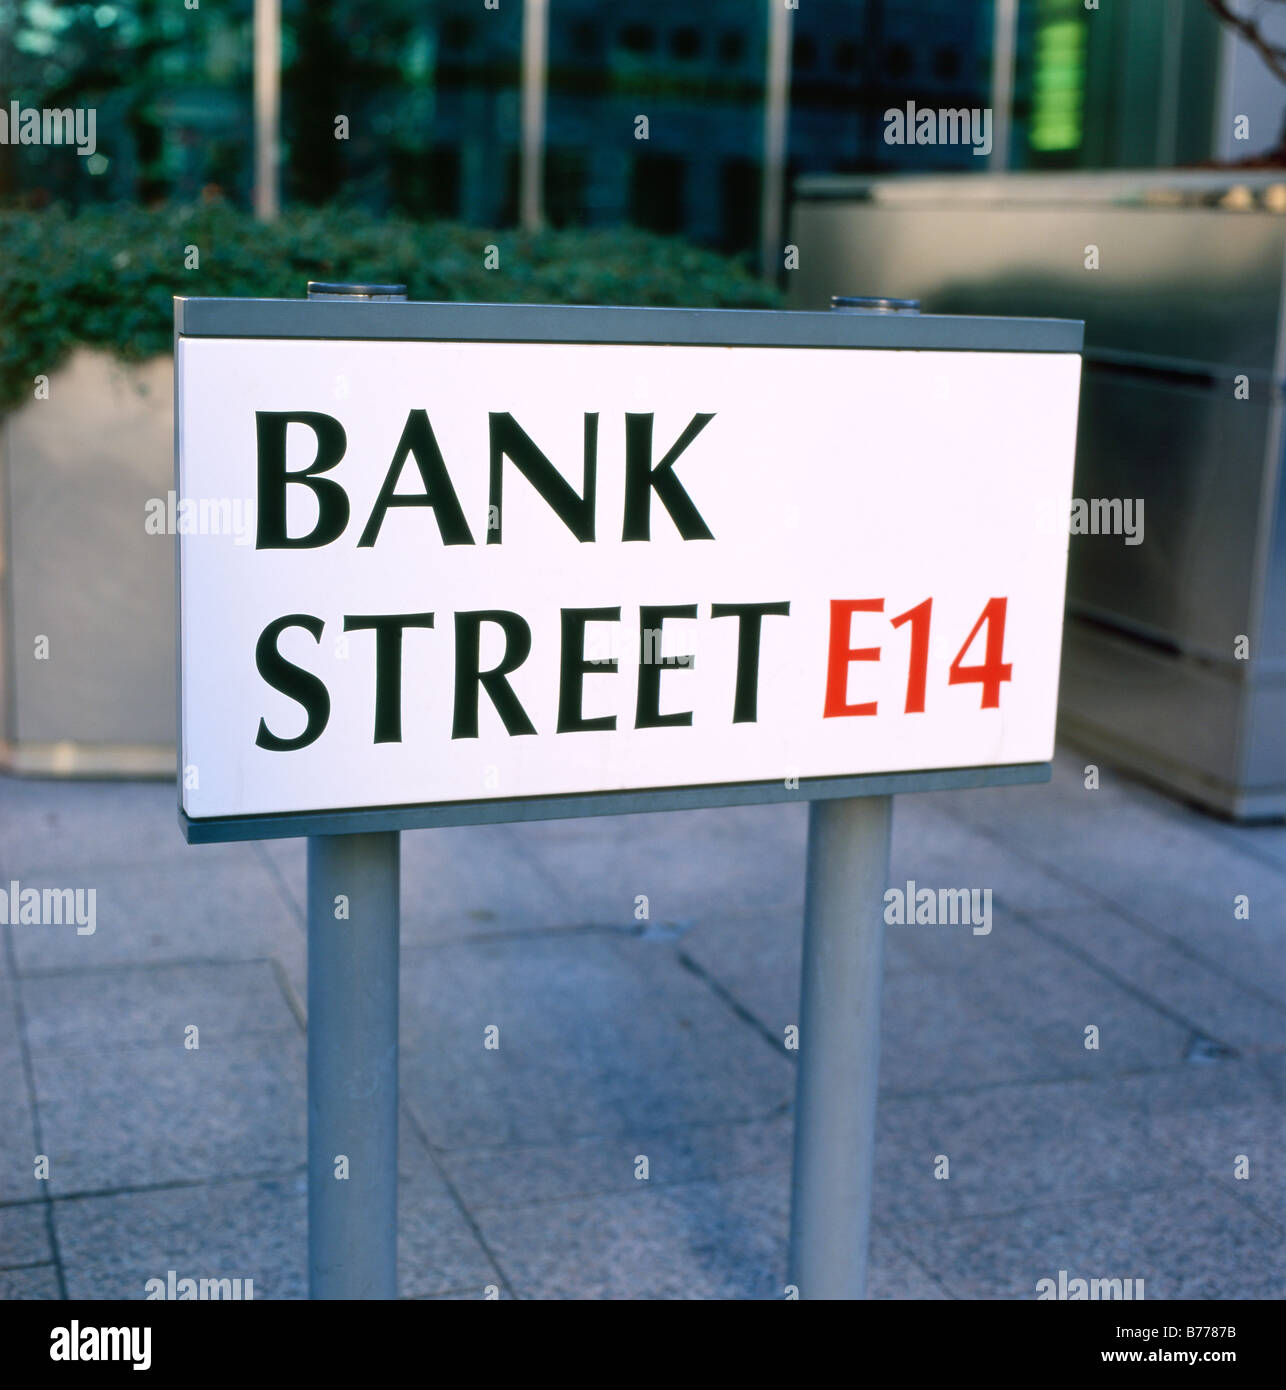 The Bank Street E14 sign Canary Wharf, CANADA SQUARE business district London England UK  KATHY DEWITT - Stock Image